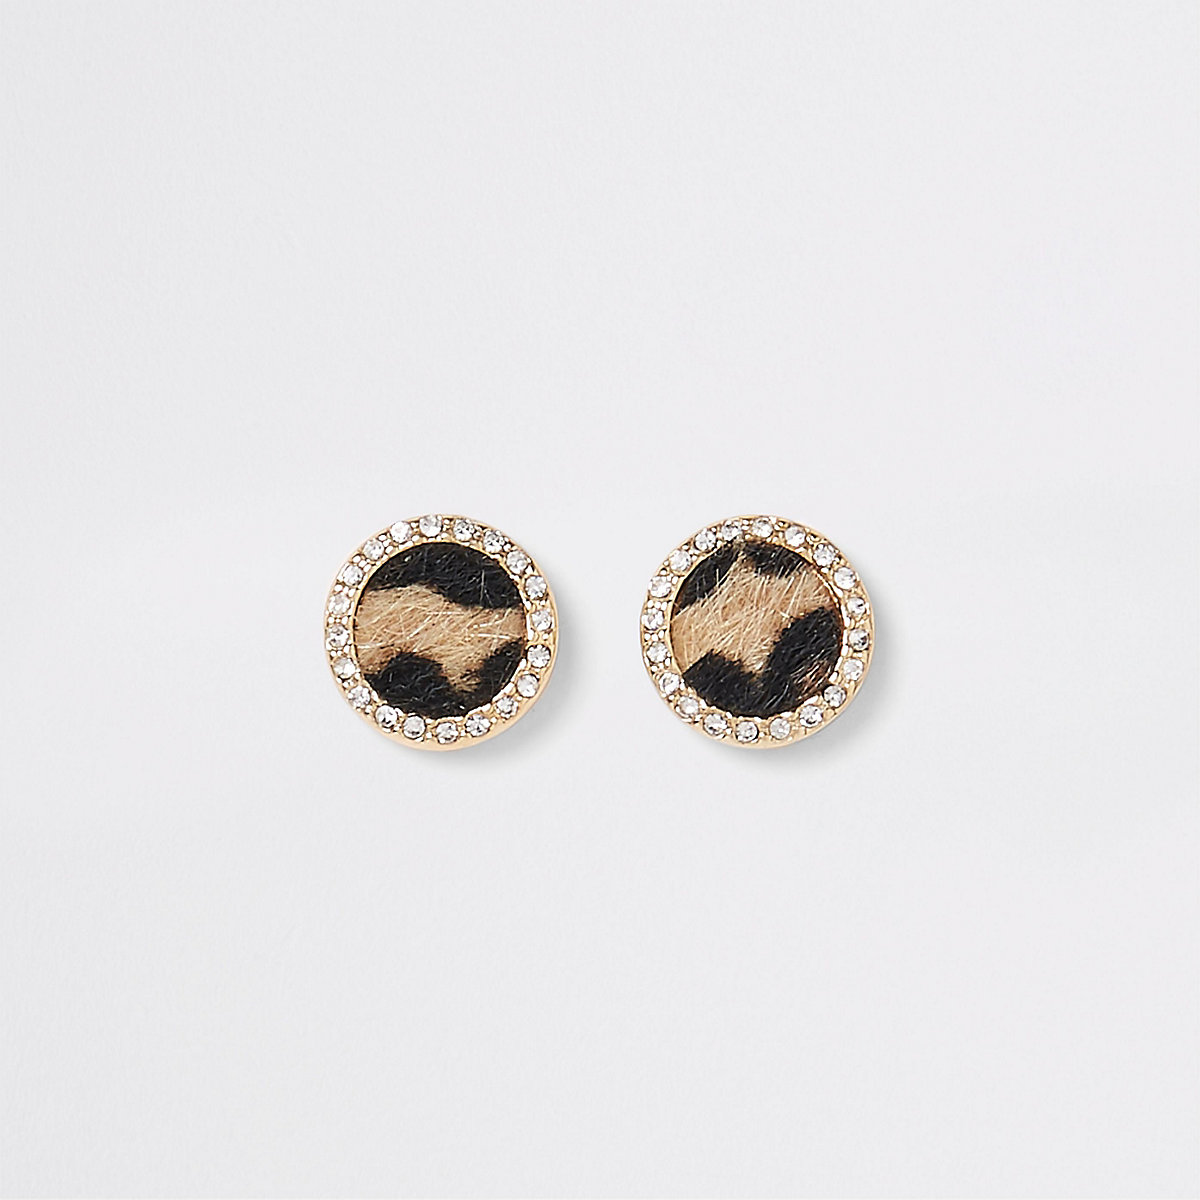 Brown leopard print rhinestone stud earrings